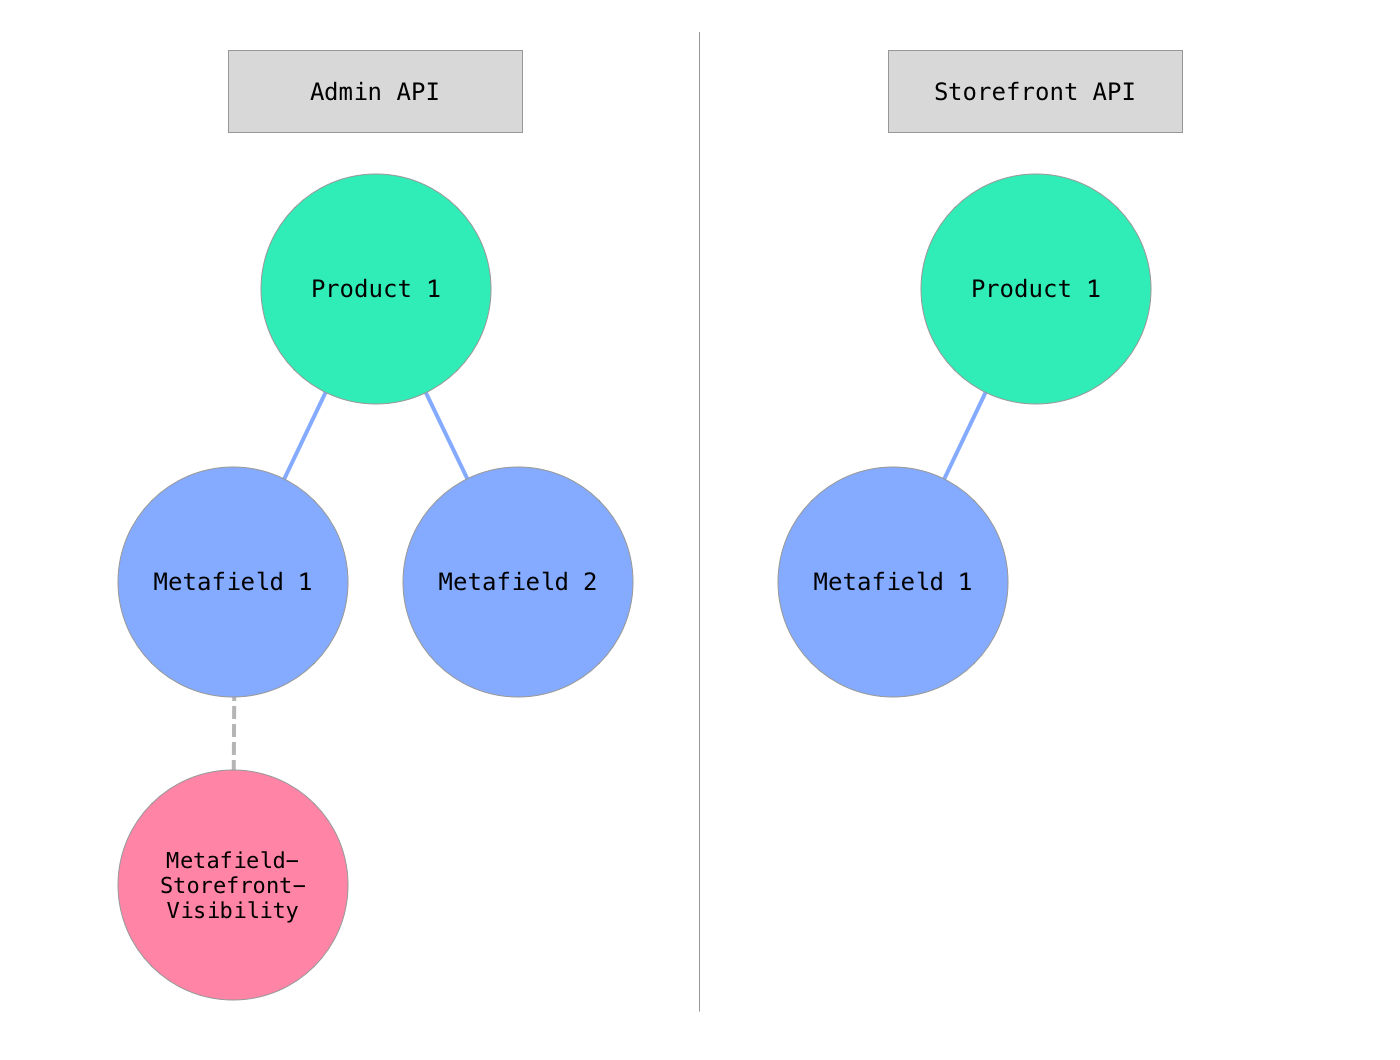 A product has two metafields: Metafield 1 and Metafield 2. Only Metafield 1 has a MetafieldStorefrontVisibility record. The Admin API can read both metafields, but the Storefront API can read only Metafield 1.